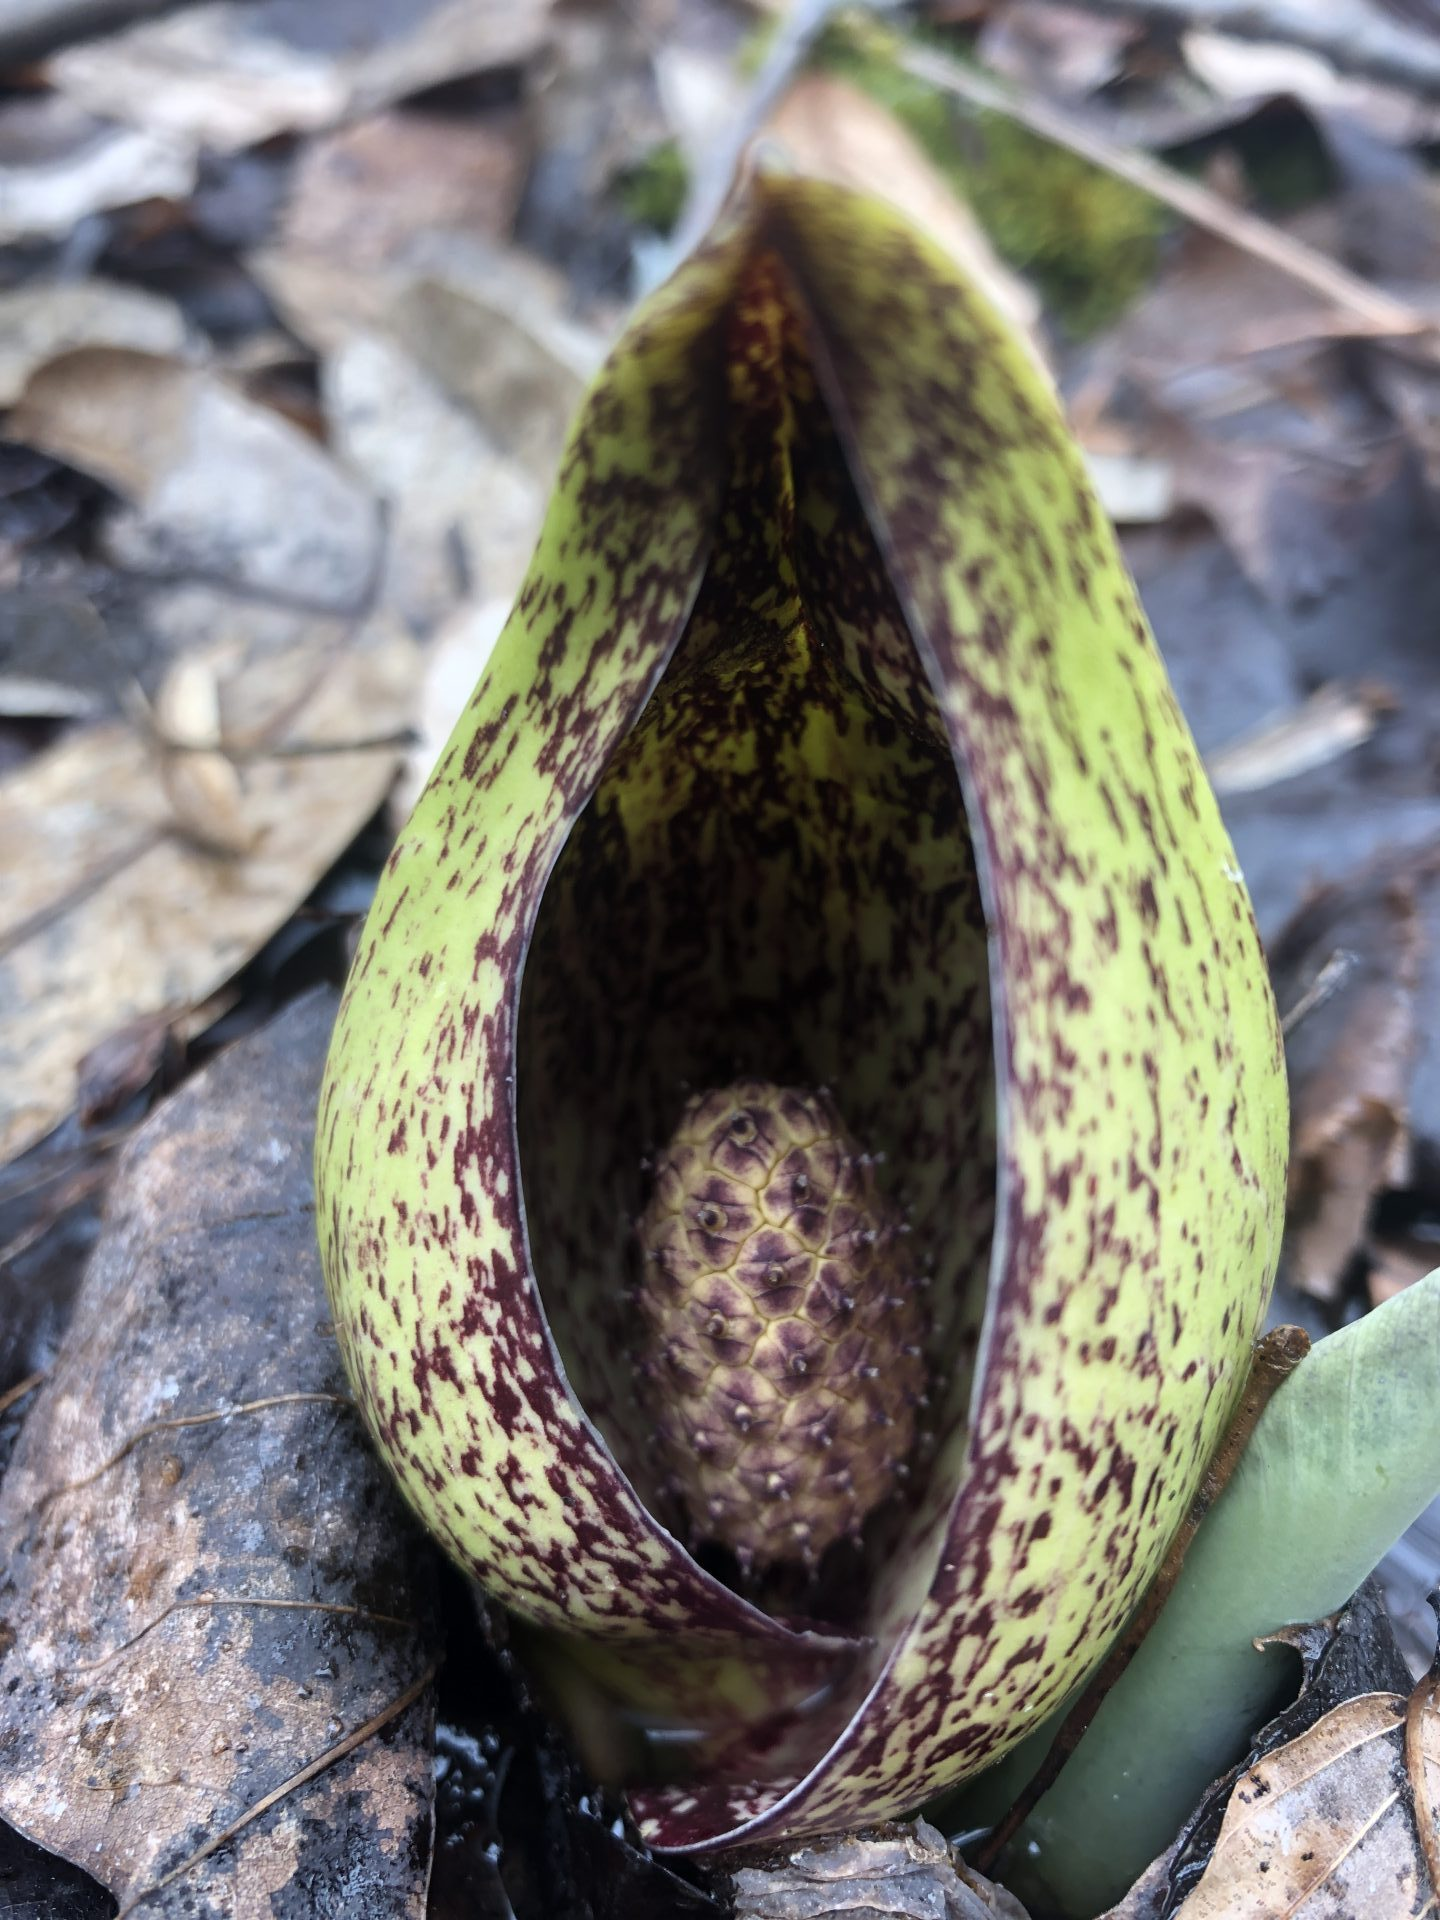 Ridgeview Farm Skunk Cabbage Photo Courtesy of Tim Pohlar